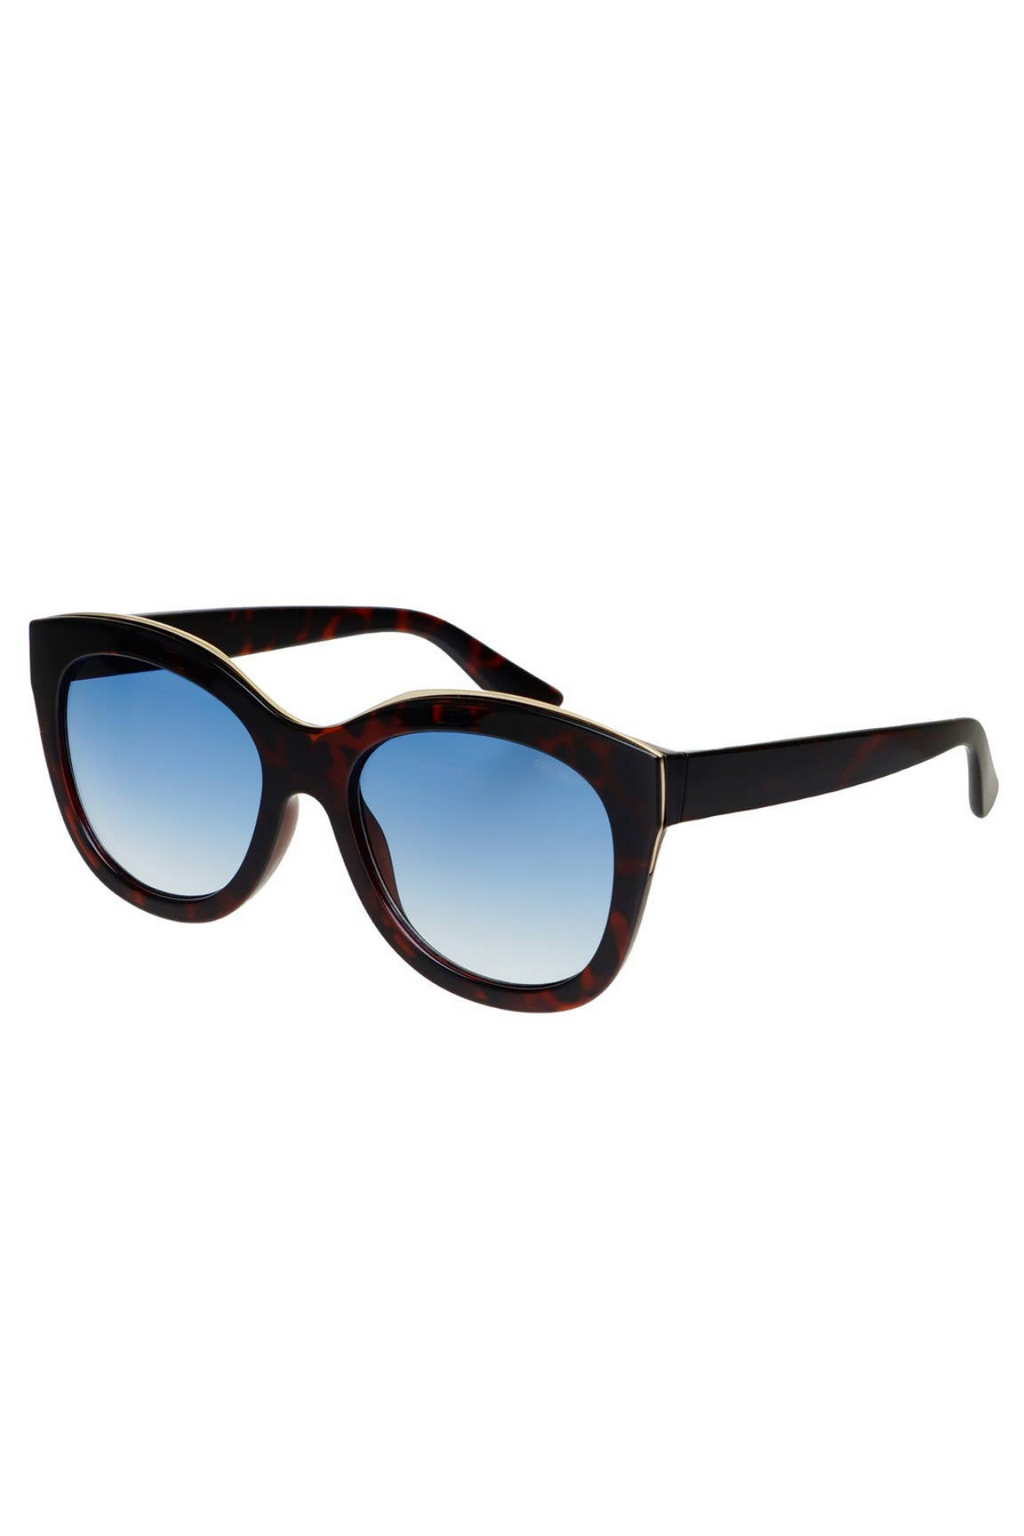 Nolita Sunglasses